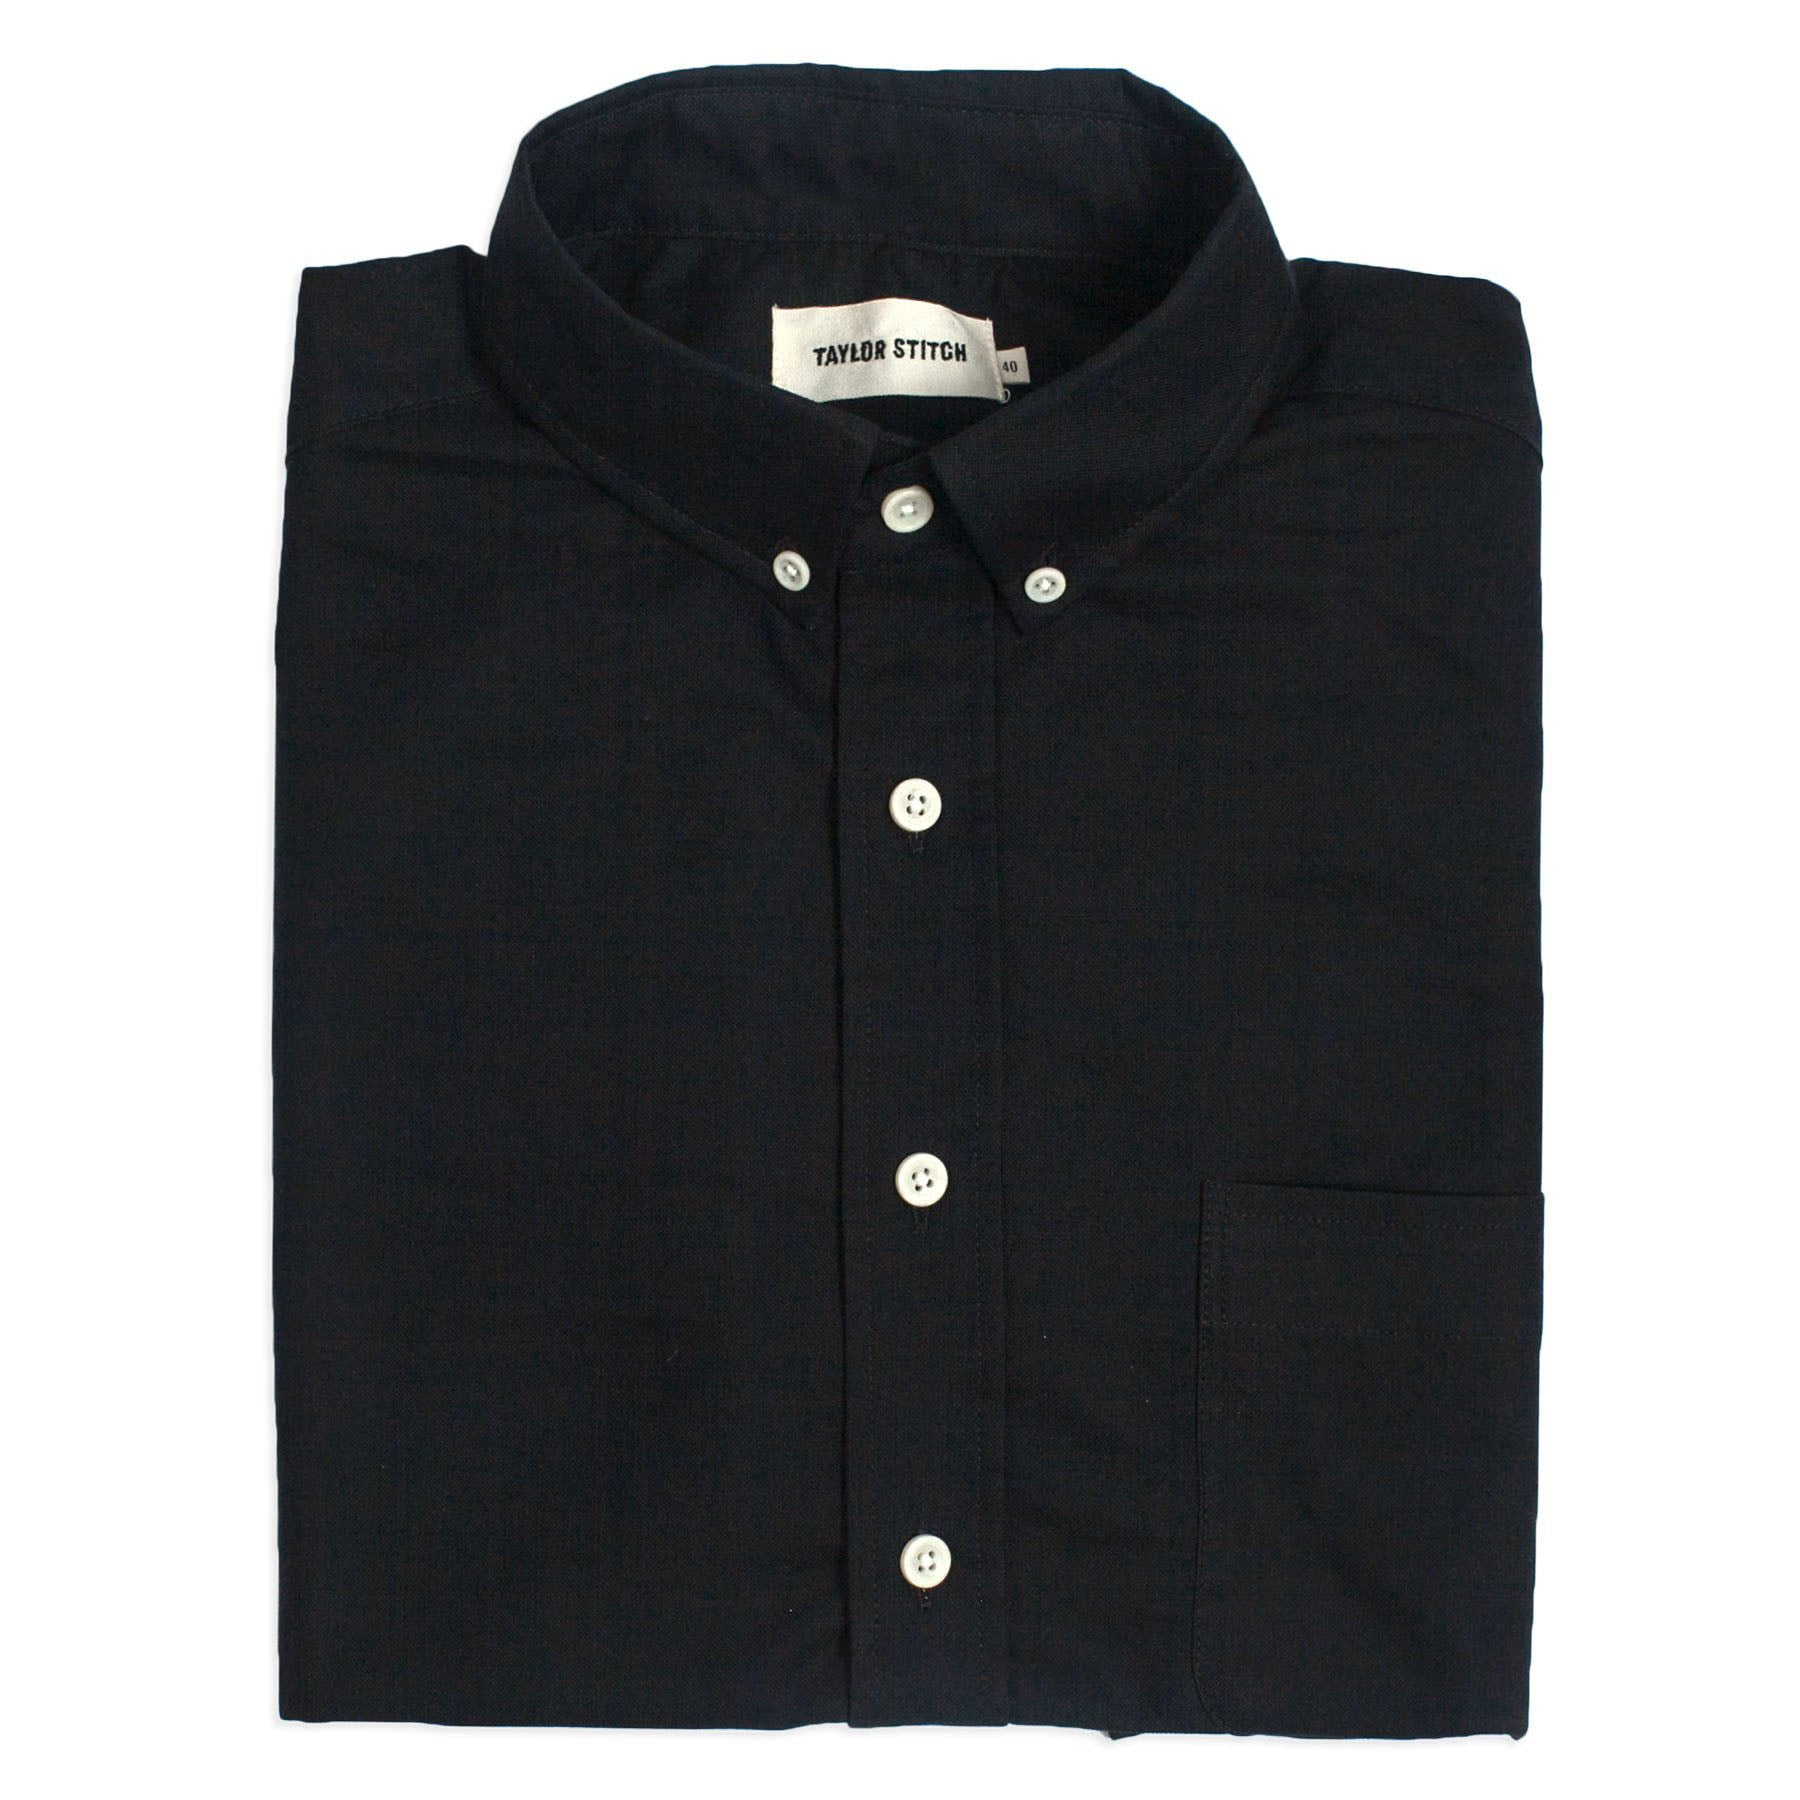 33f30e86ad The Jack in Black Everyday Oxford - Classic Men s Clothing